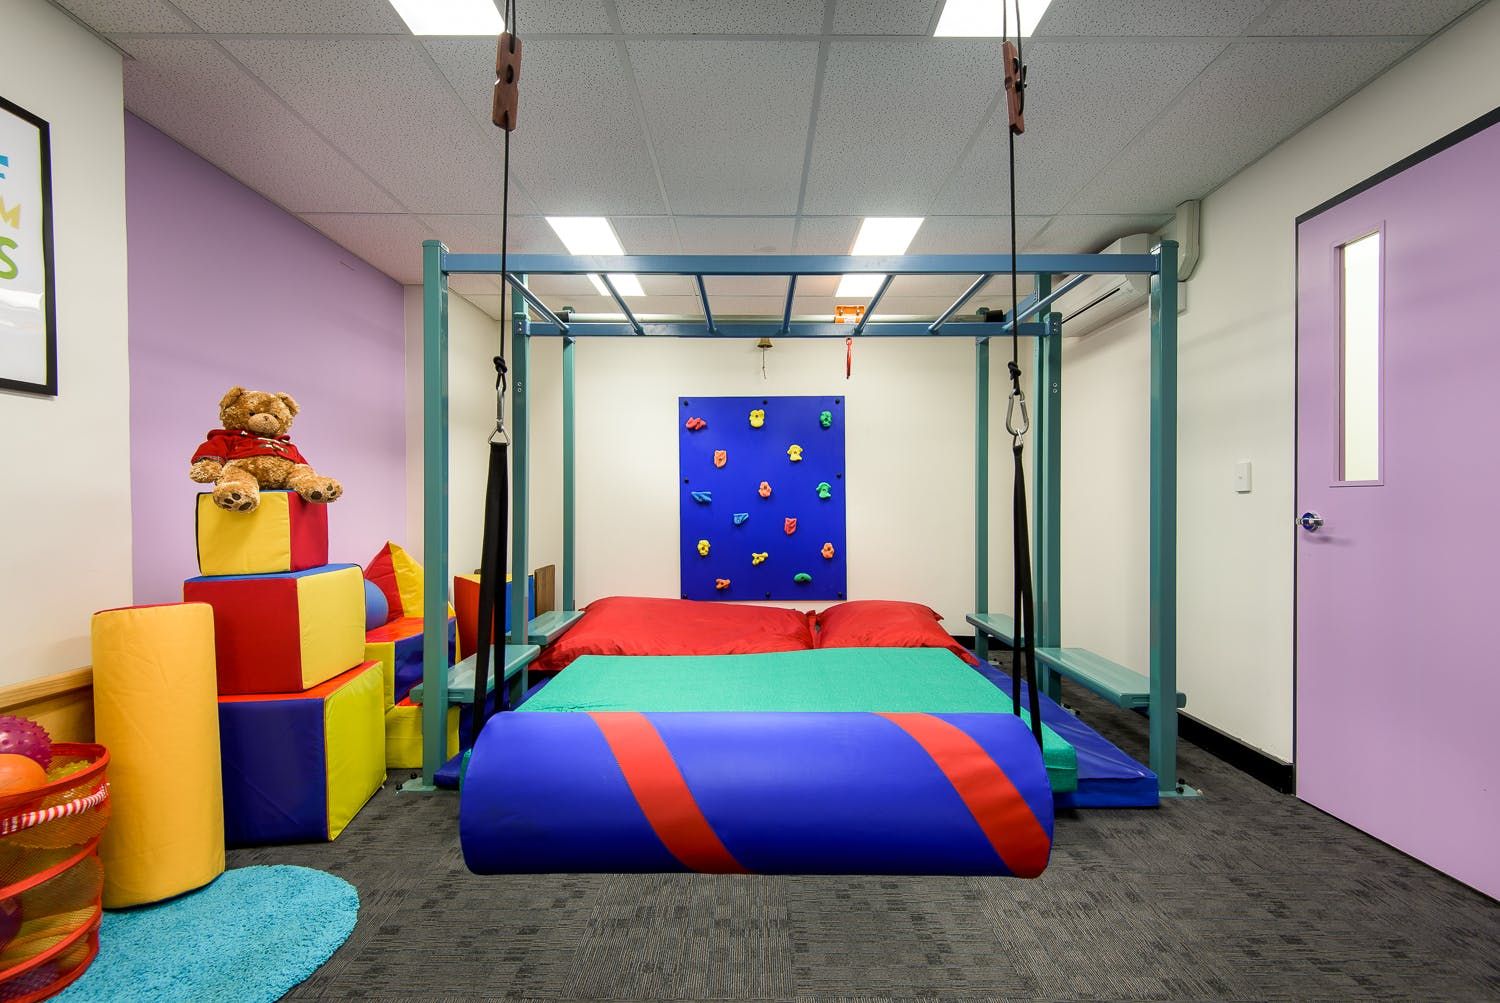 Large Therapy Room / Children's Gym Room, multi-use area at AIM Occupational Therapy, image 1